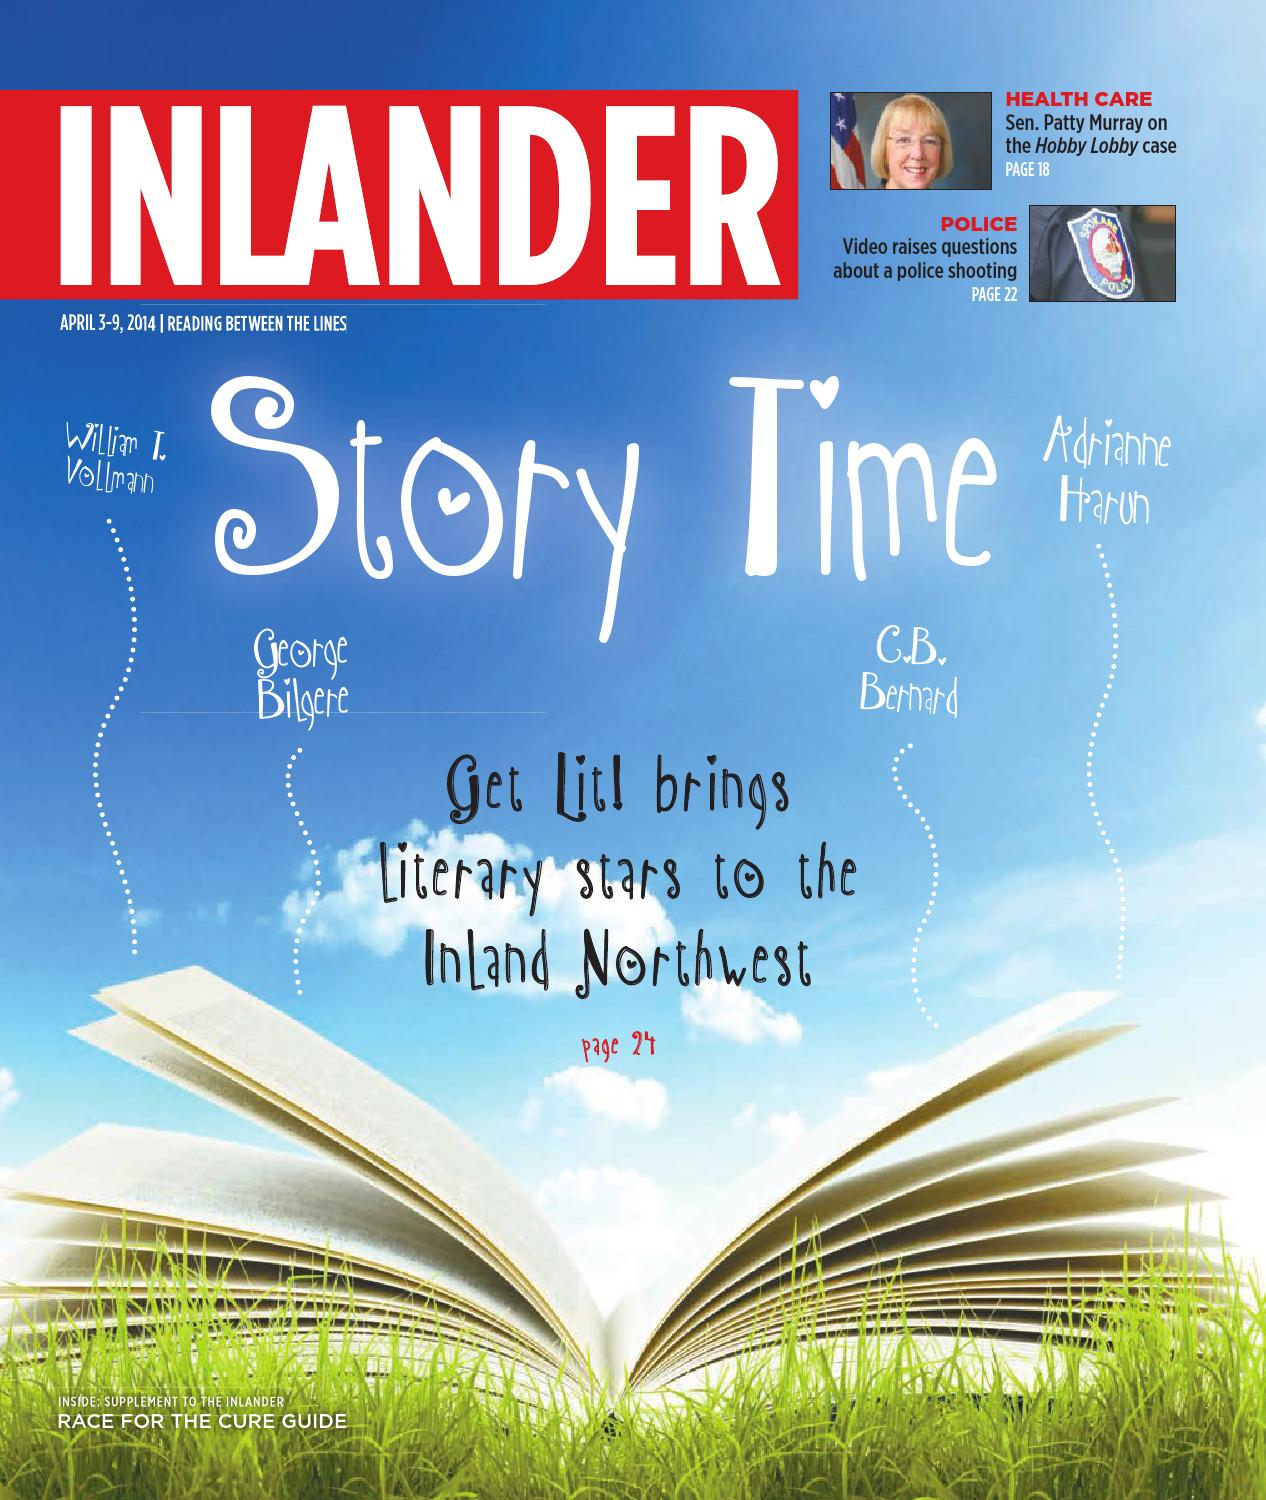 Inlander 04/03/2014 by The Inlander - issuu